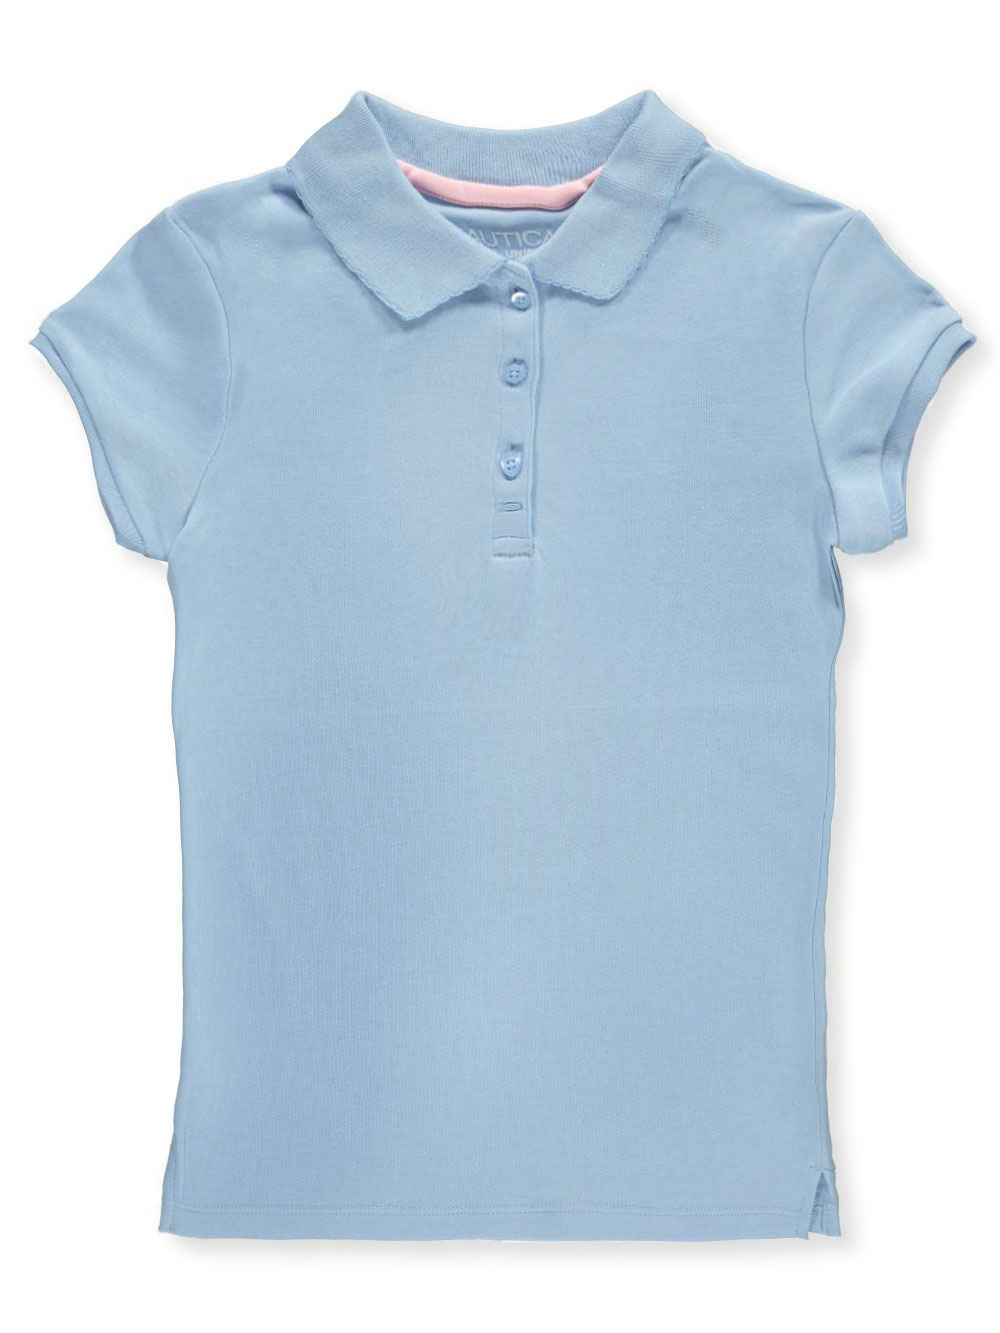 Girls Blue Polo Tops